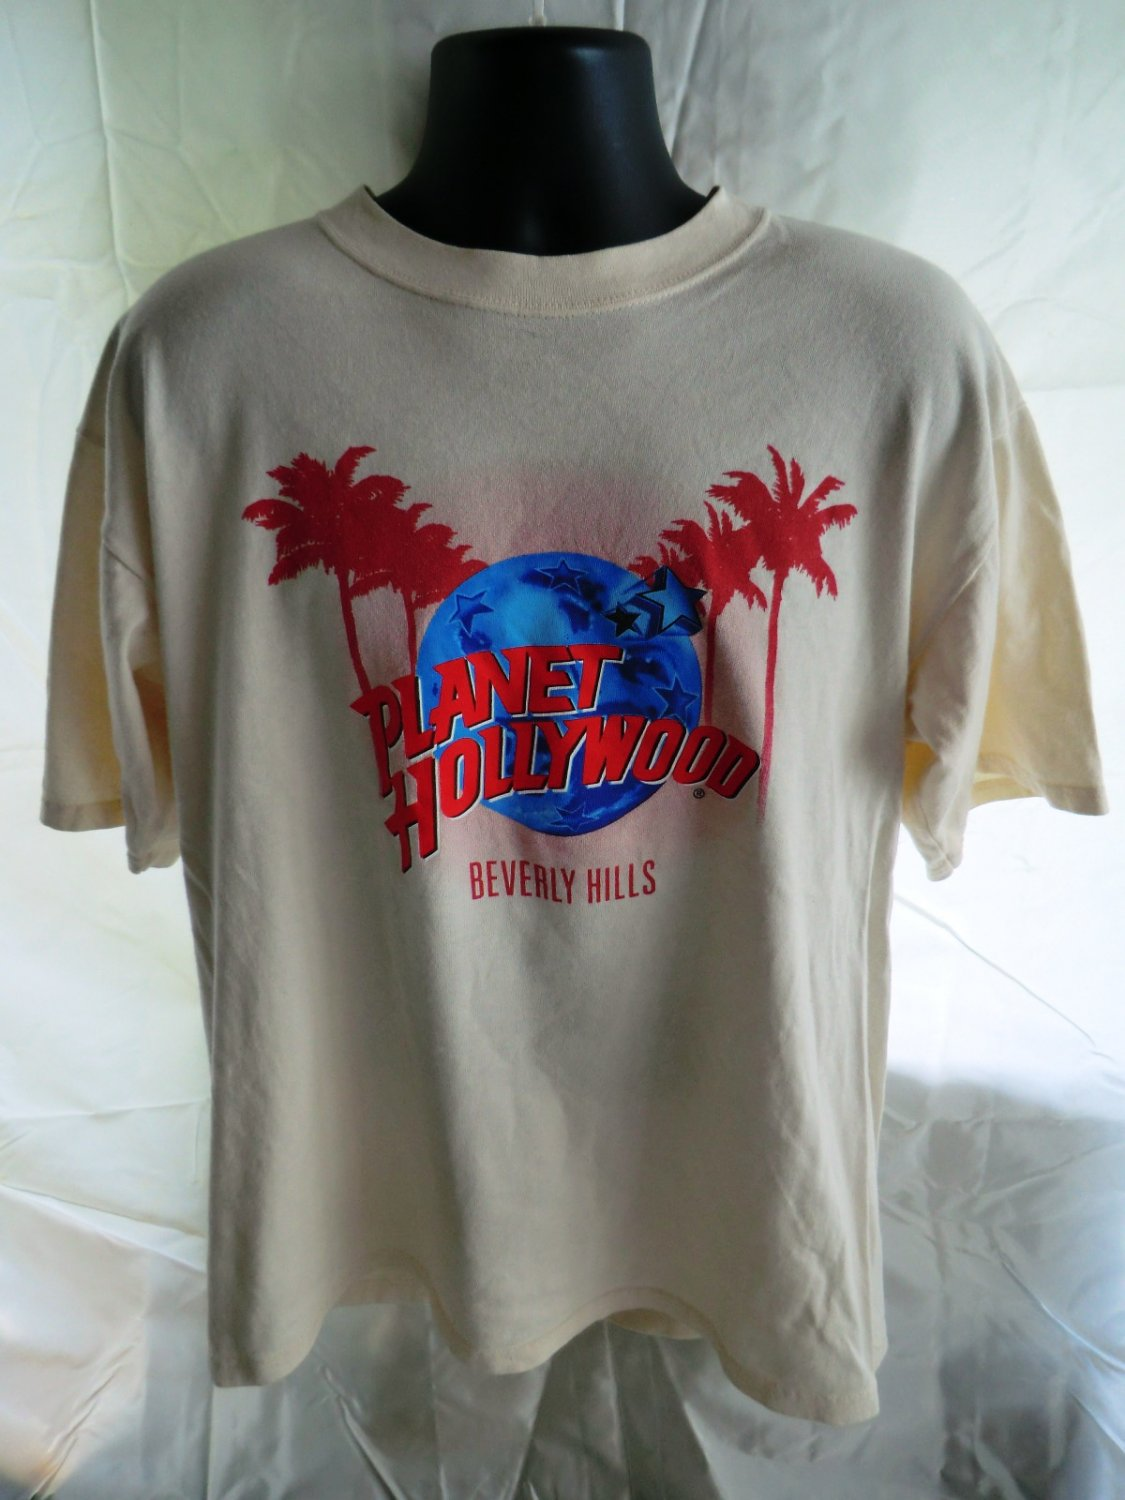 HOLD Planet Hollywood Beverly Hills CA T-Shirt Size Large/ XL 1991